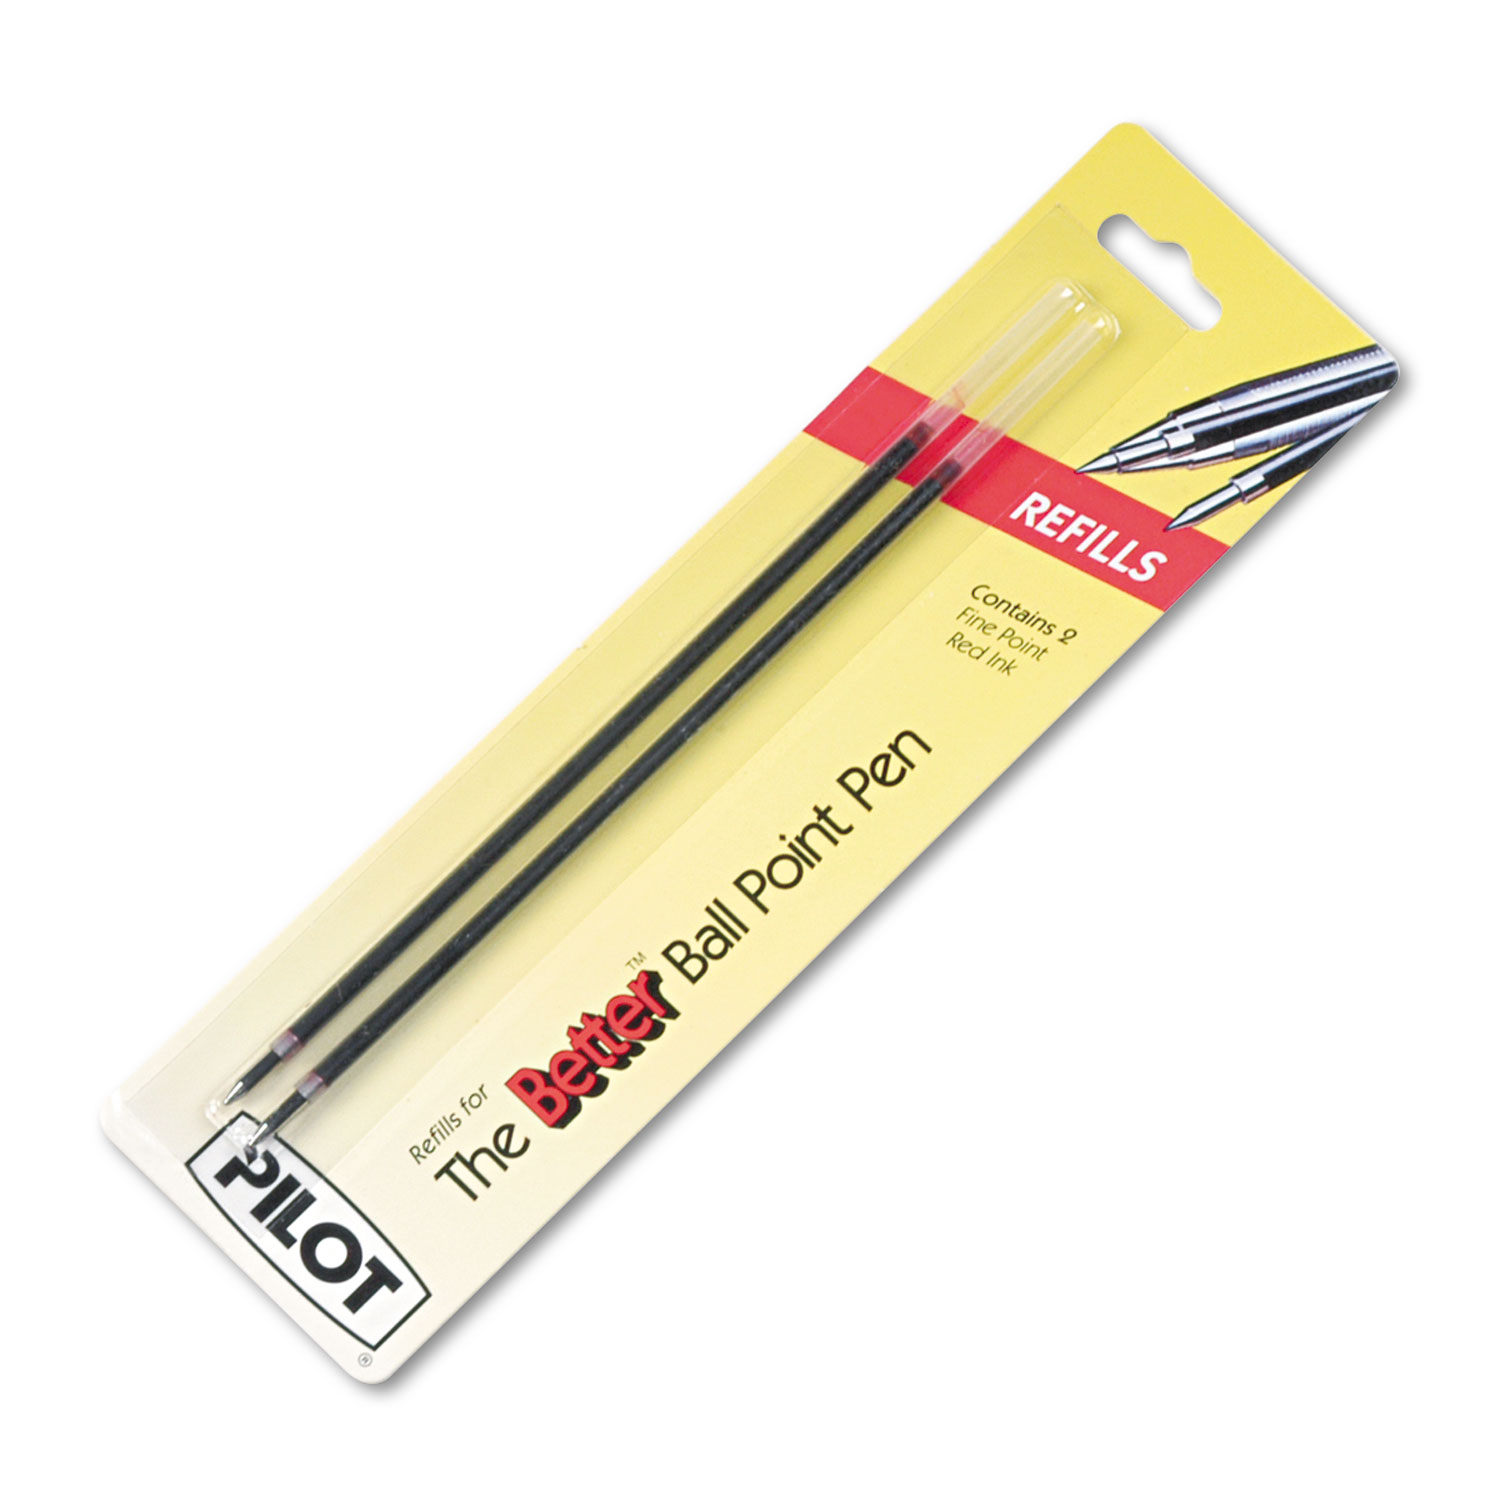 Pilot Bps Easy Touch Ballpoint Pen Refill - 0.70 Mm - Fine Point - Red - 2 / Pack (77217)